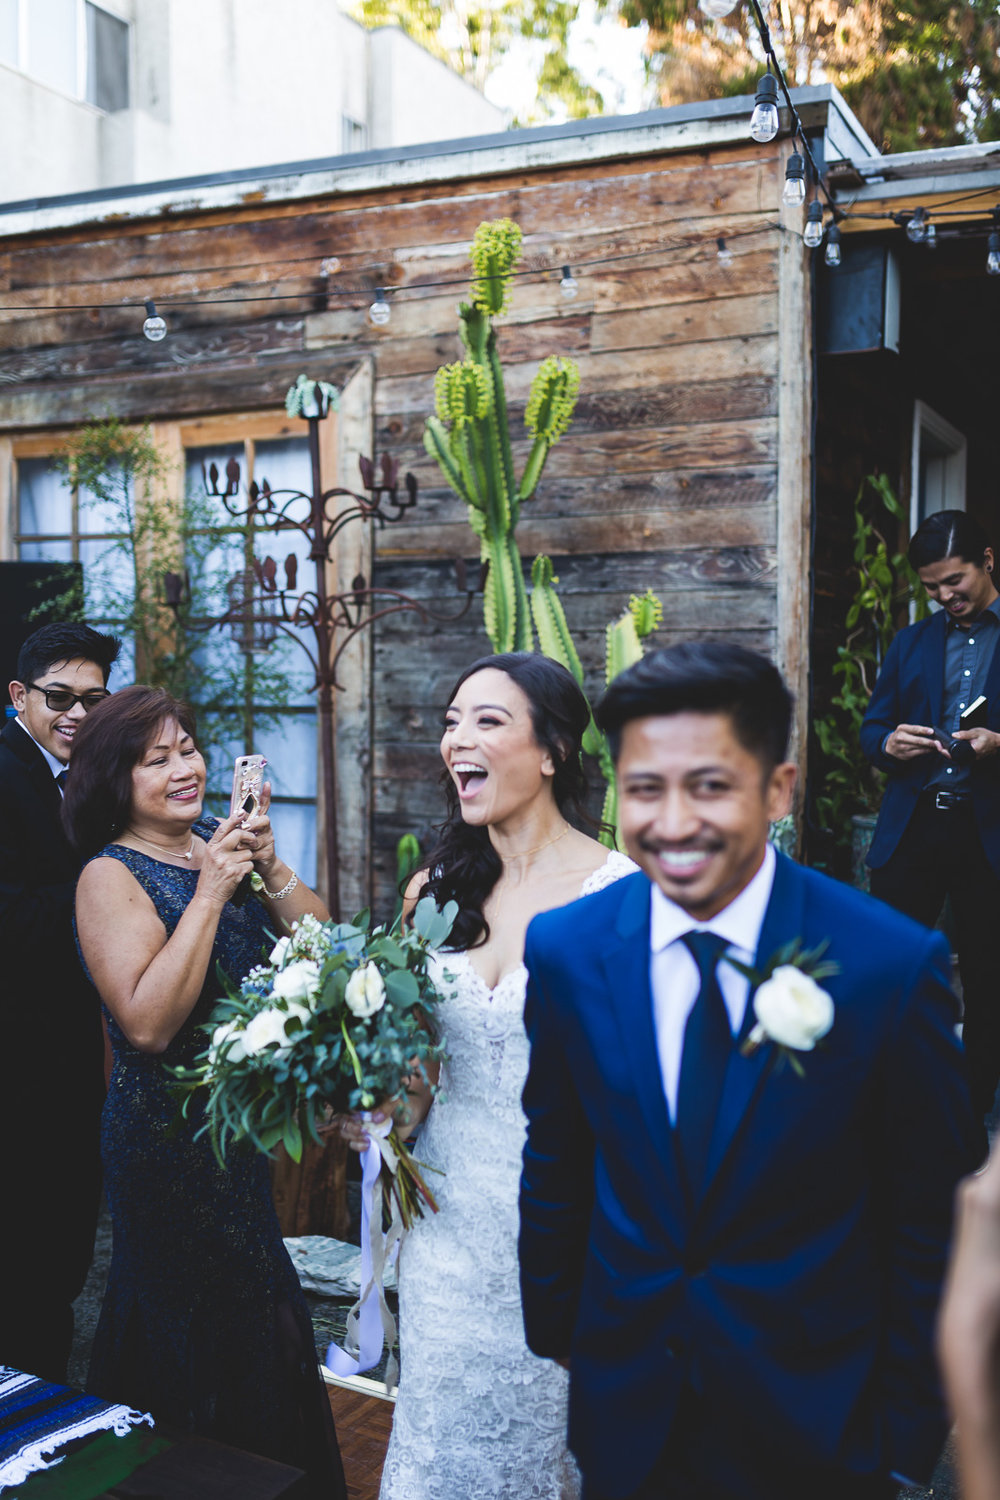 Jeremy-Lizette-Wedding-6.jpg